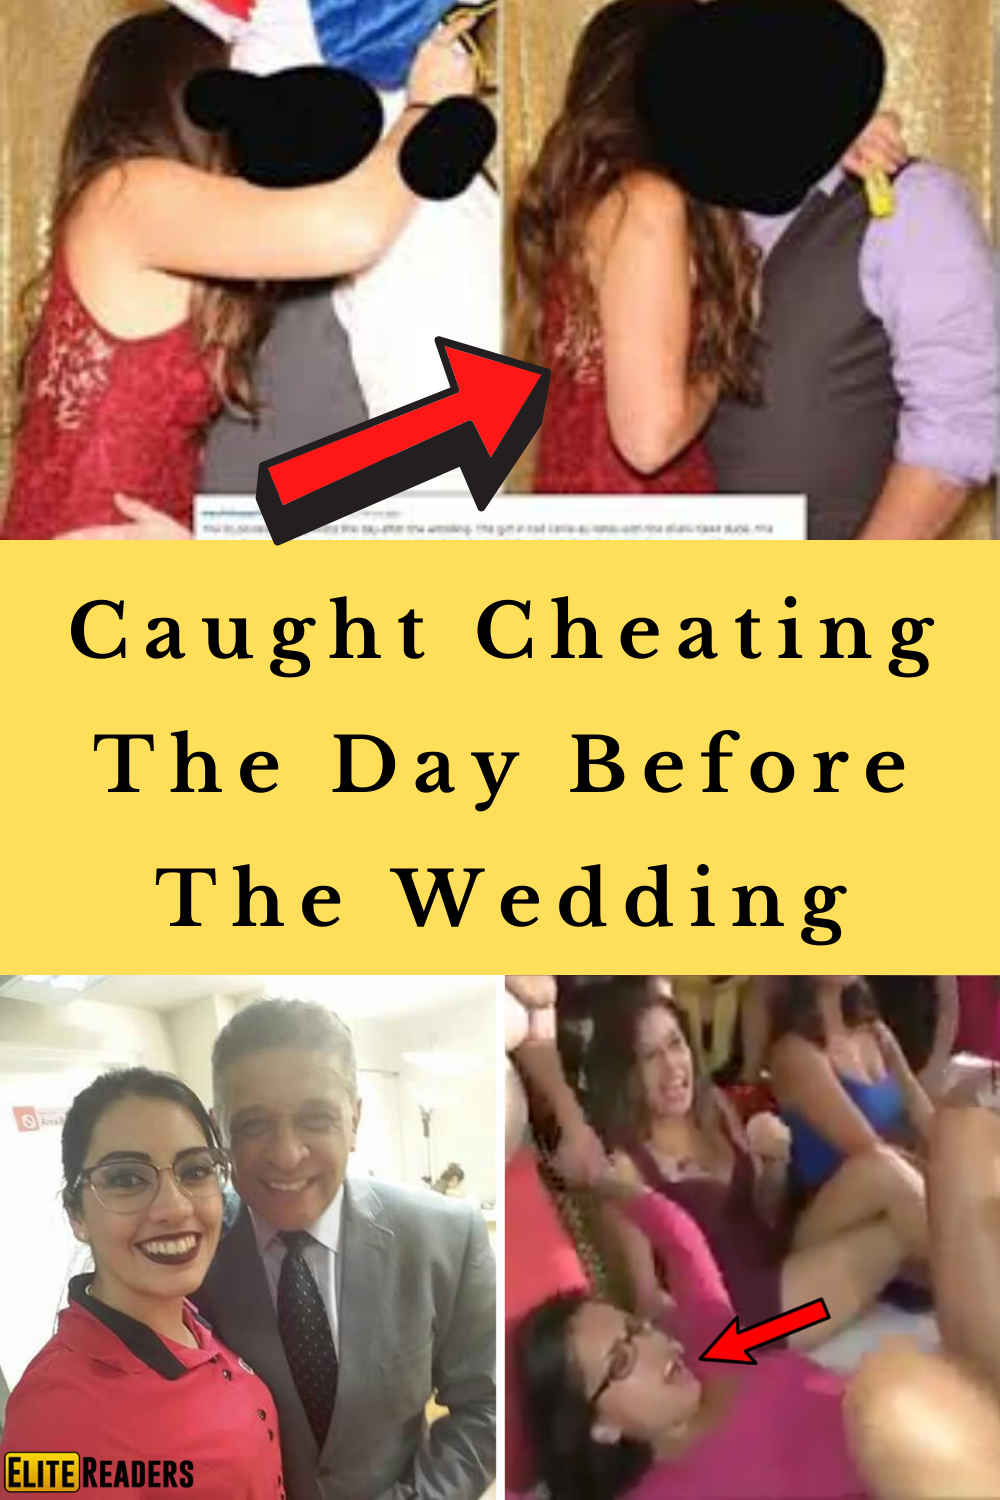 Caught Cheating The Day Before The Wedding In 2020 Awkward Funny Embarrassing Moments Caught Cheating